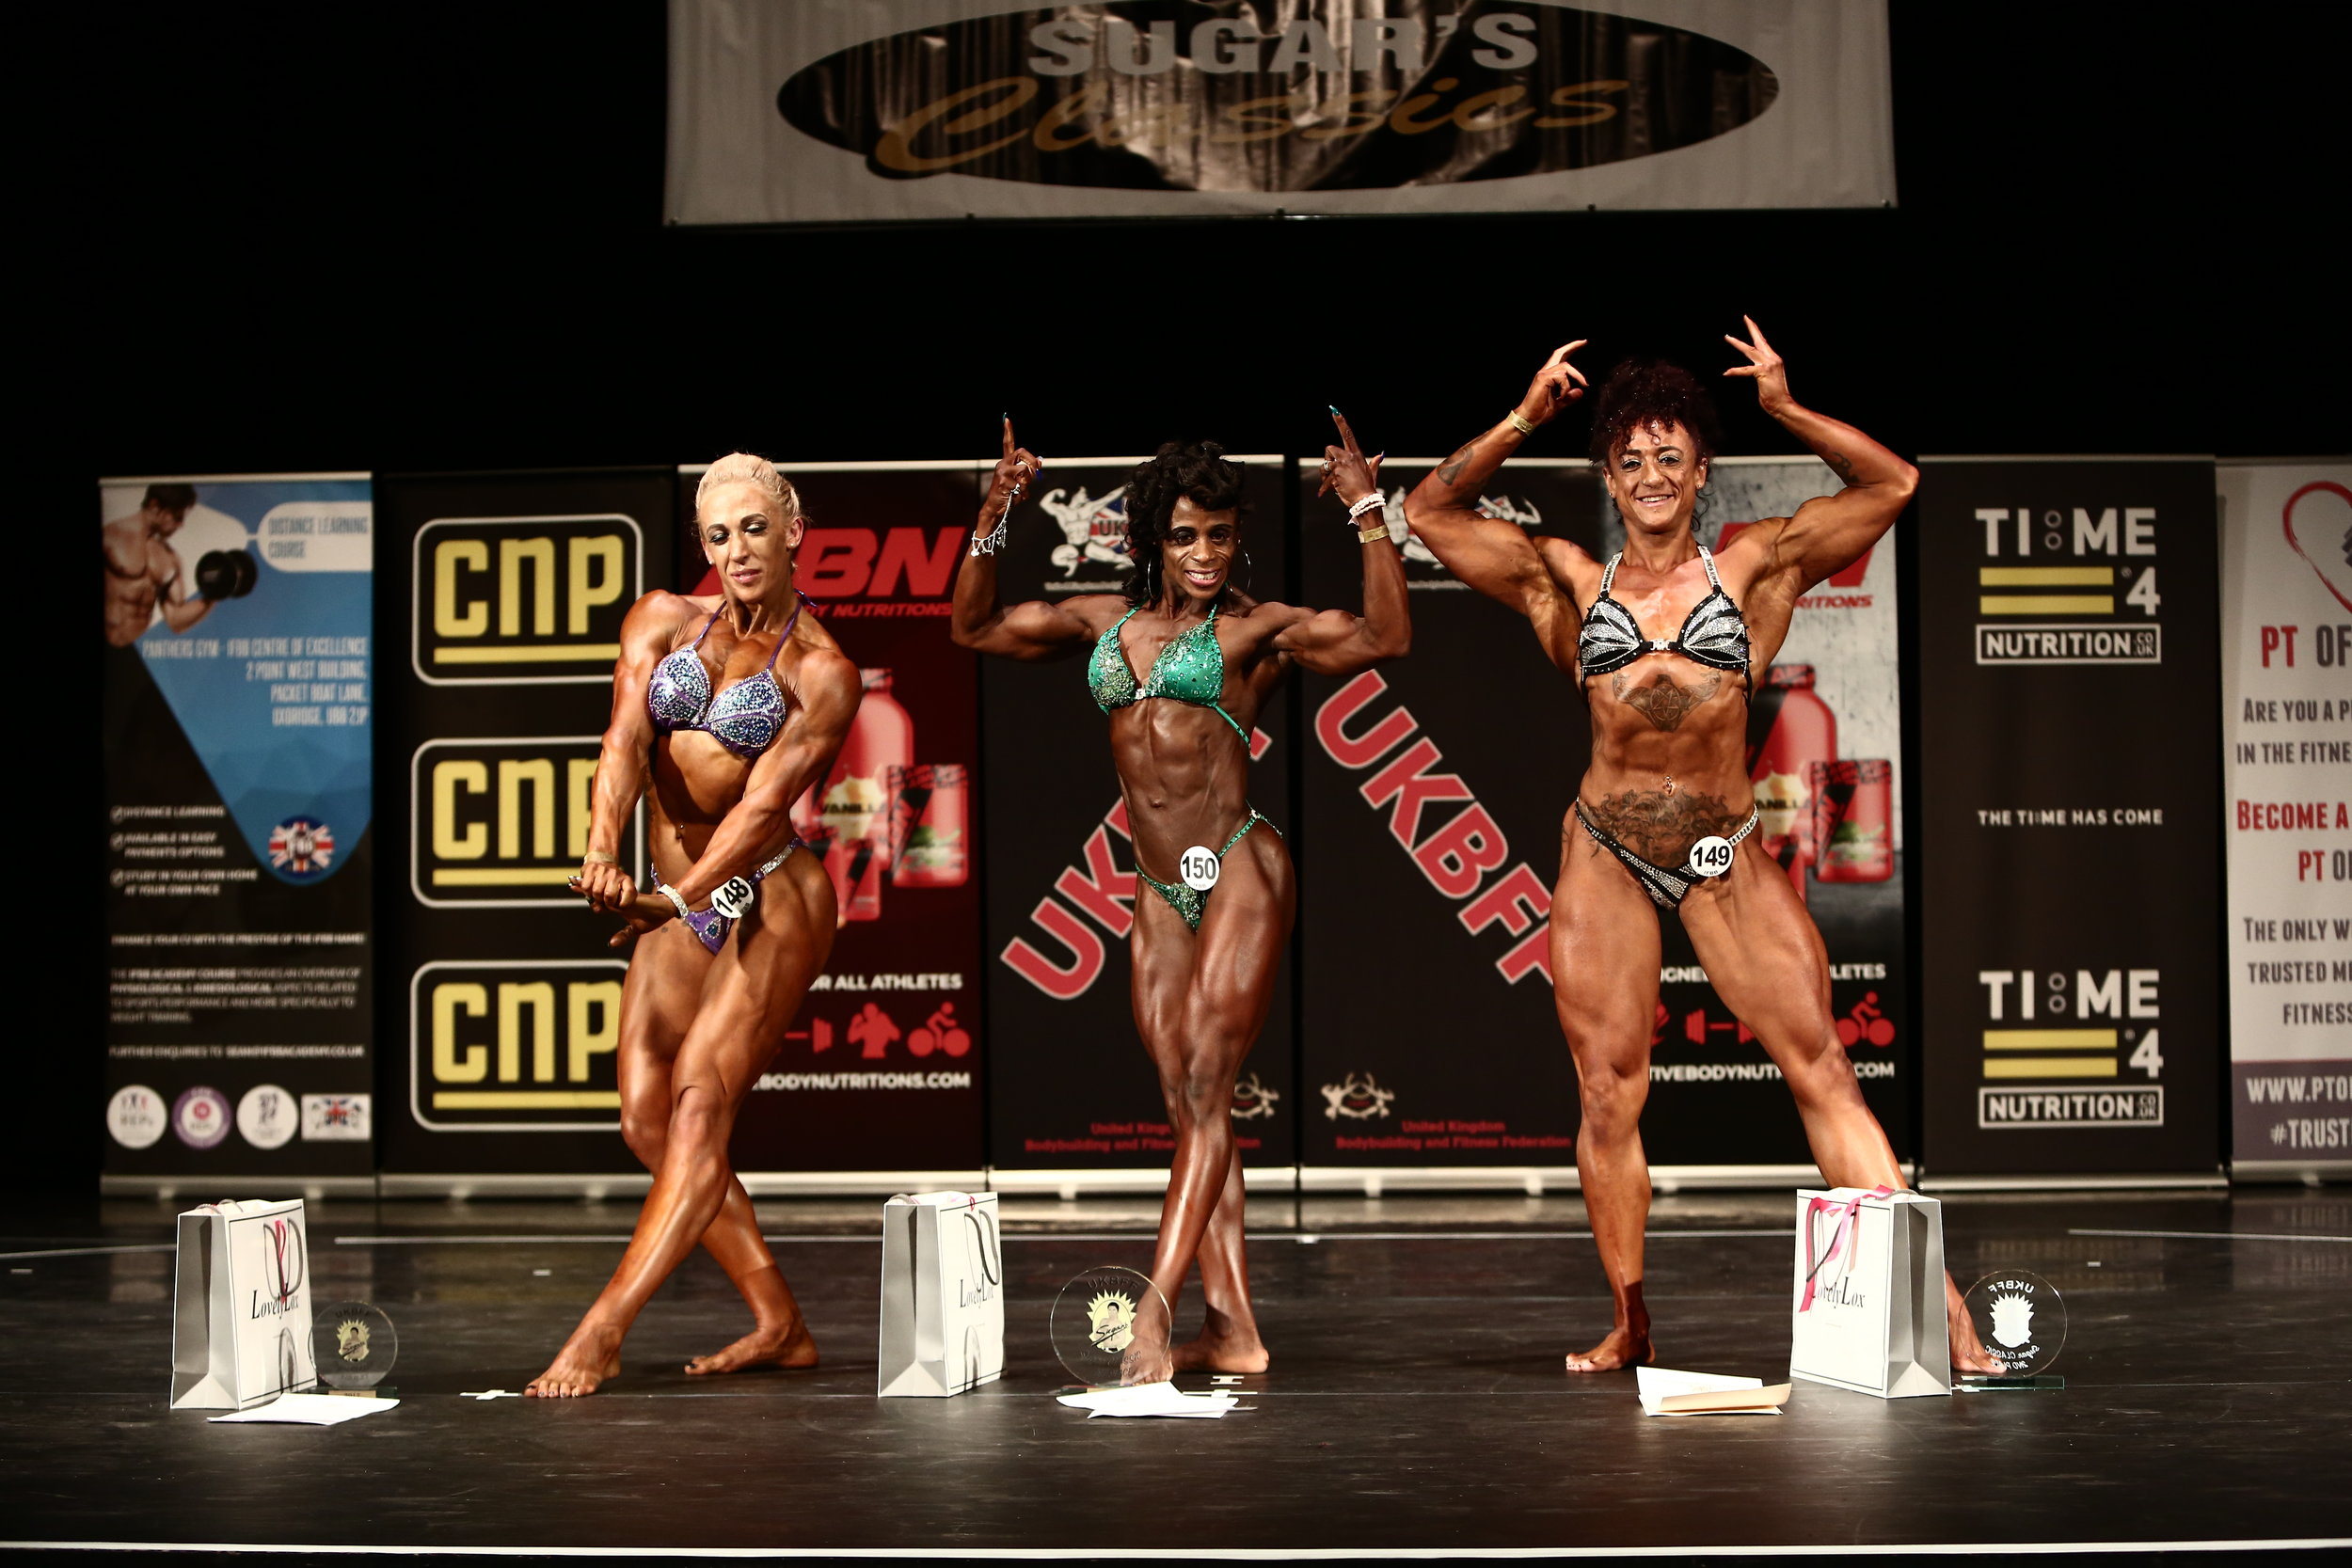 Winning women's physique at last year's Sugar Classic in Leicester. PHOTO: Simon Howard